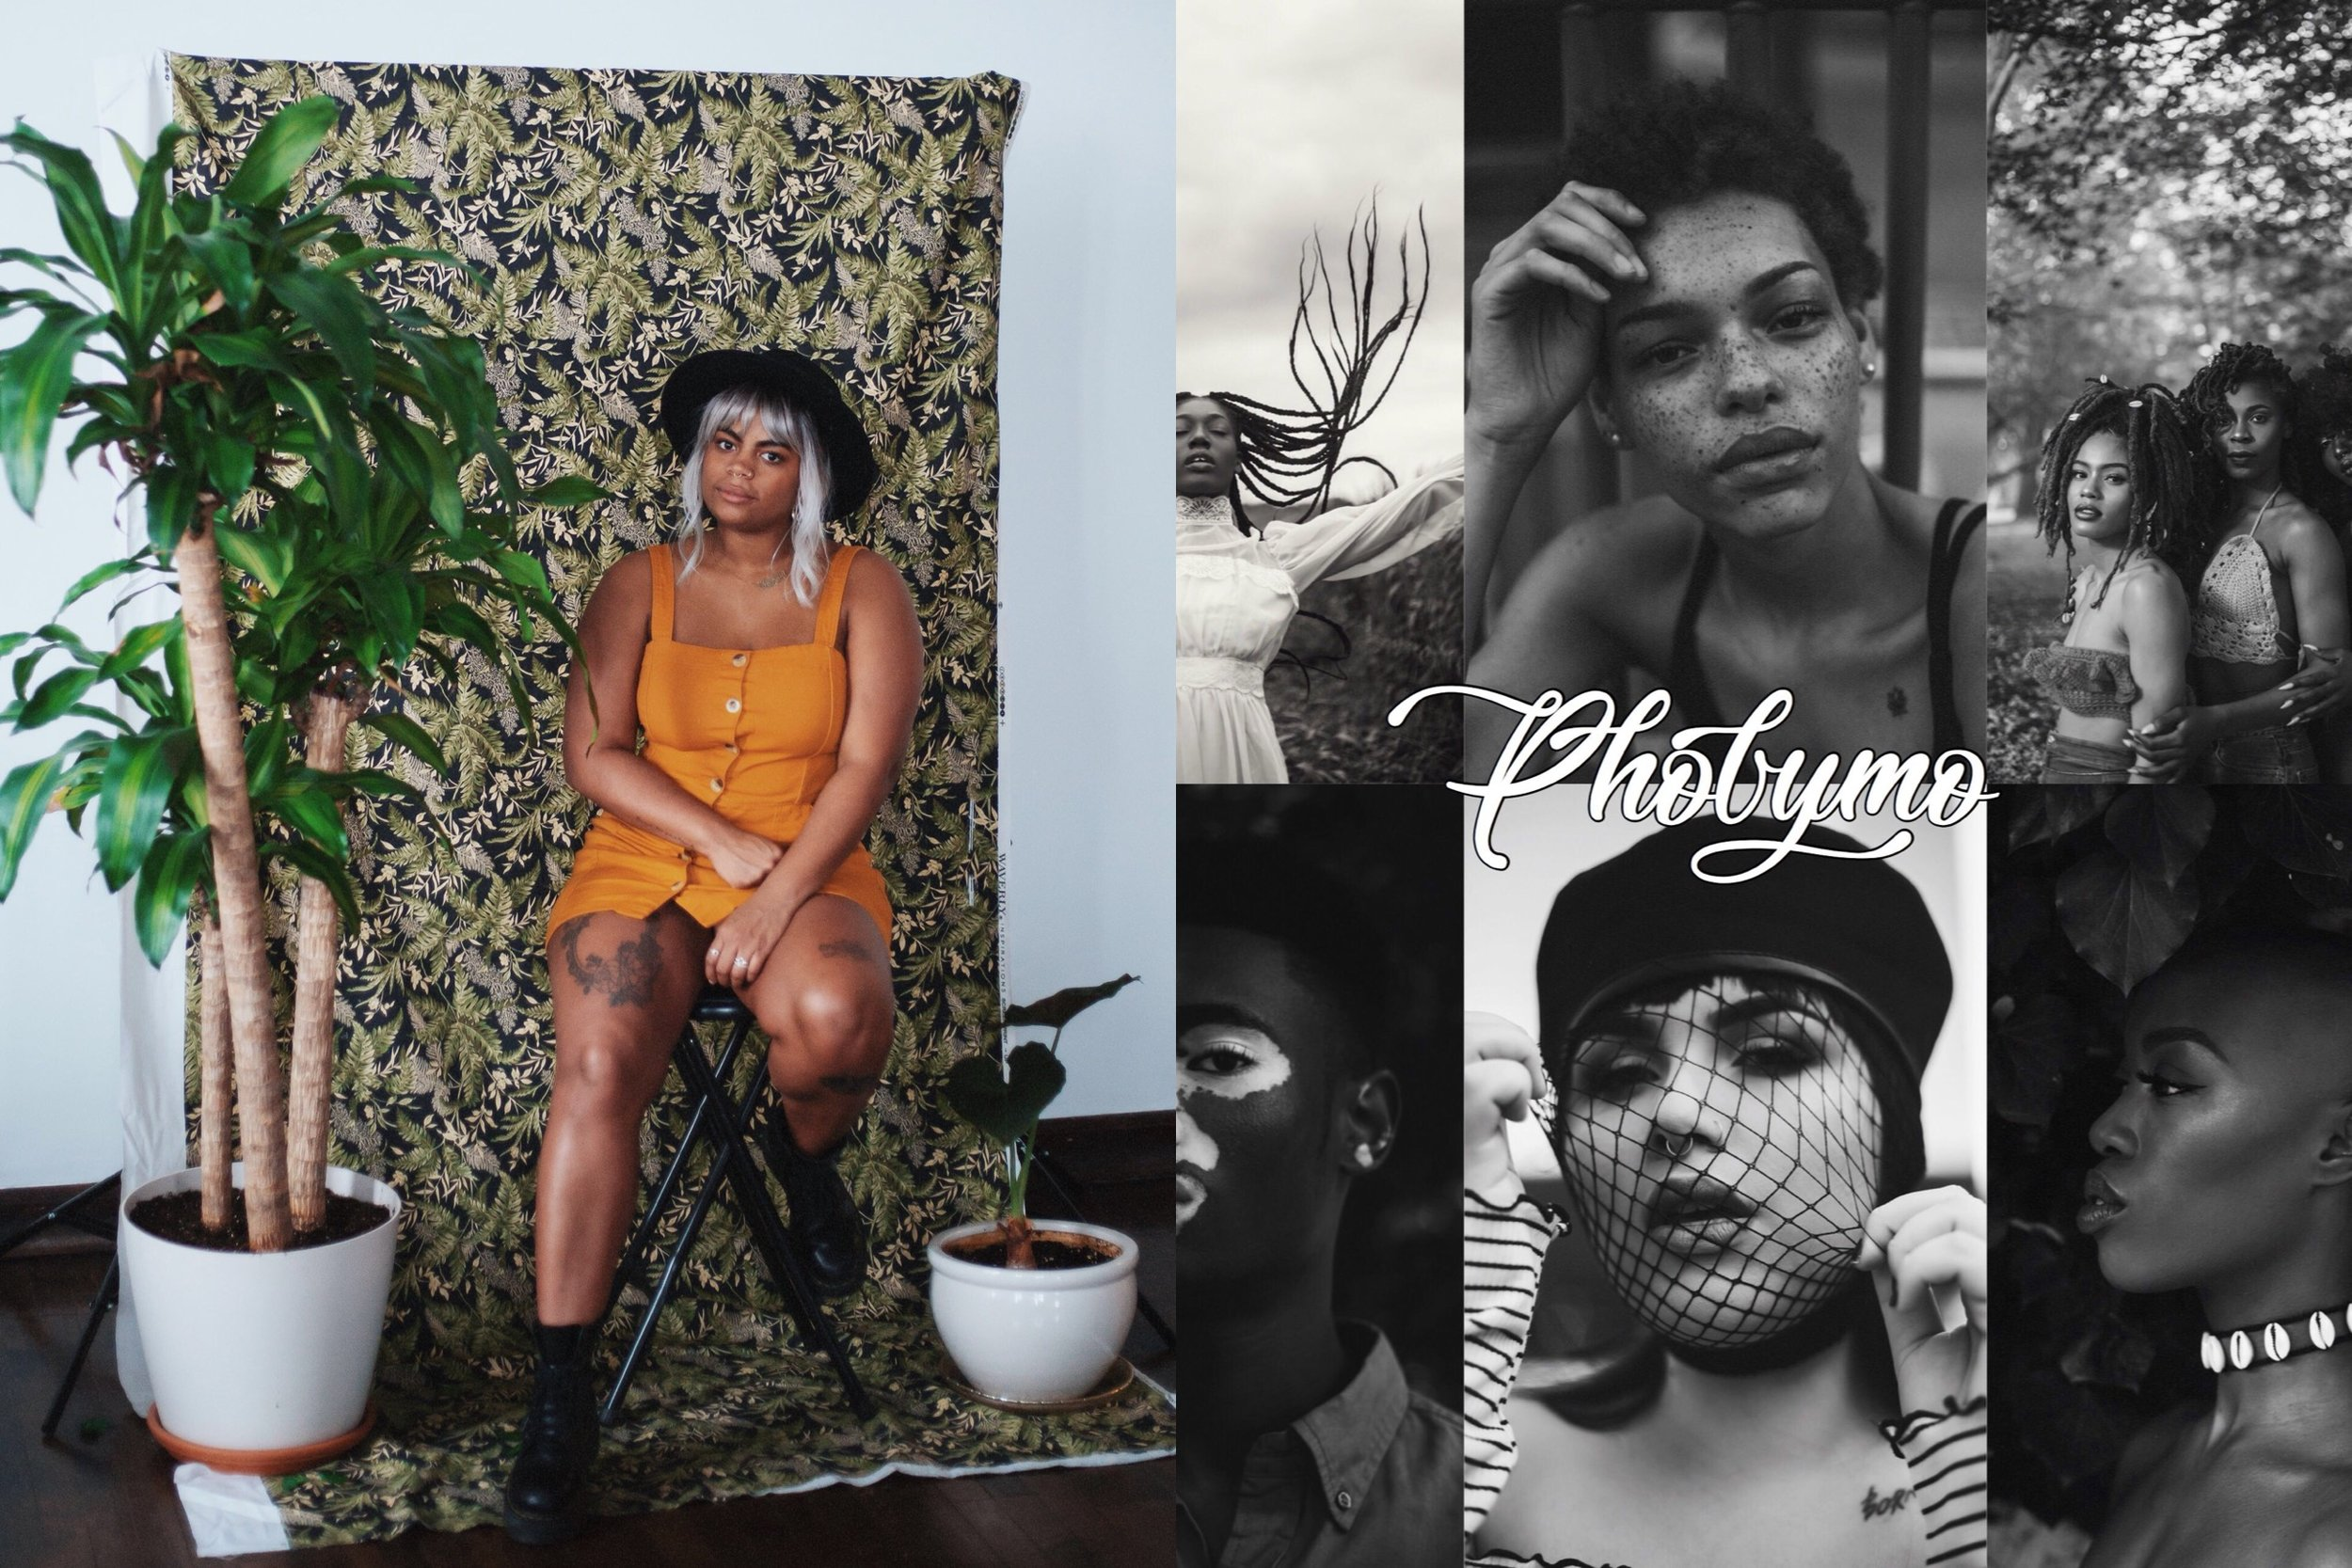 Phobymo - Phobymo (Morgan Smith) is a self taught black female photographer from Philly. Her photography focuses on celebrating diverse bodies & capturing the beauty and strength of women of all races, sizes and ages. Her main goal is to empower and inspire women with her work. In addition to photography, and in line with her main goal, she also curates and hosts a biannual all women's art showcase called Time To Pretend.